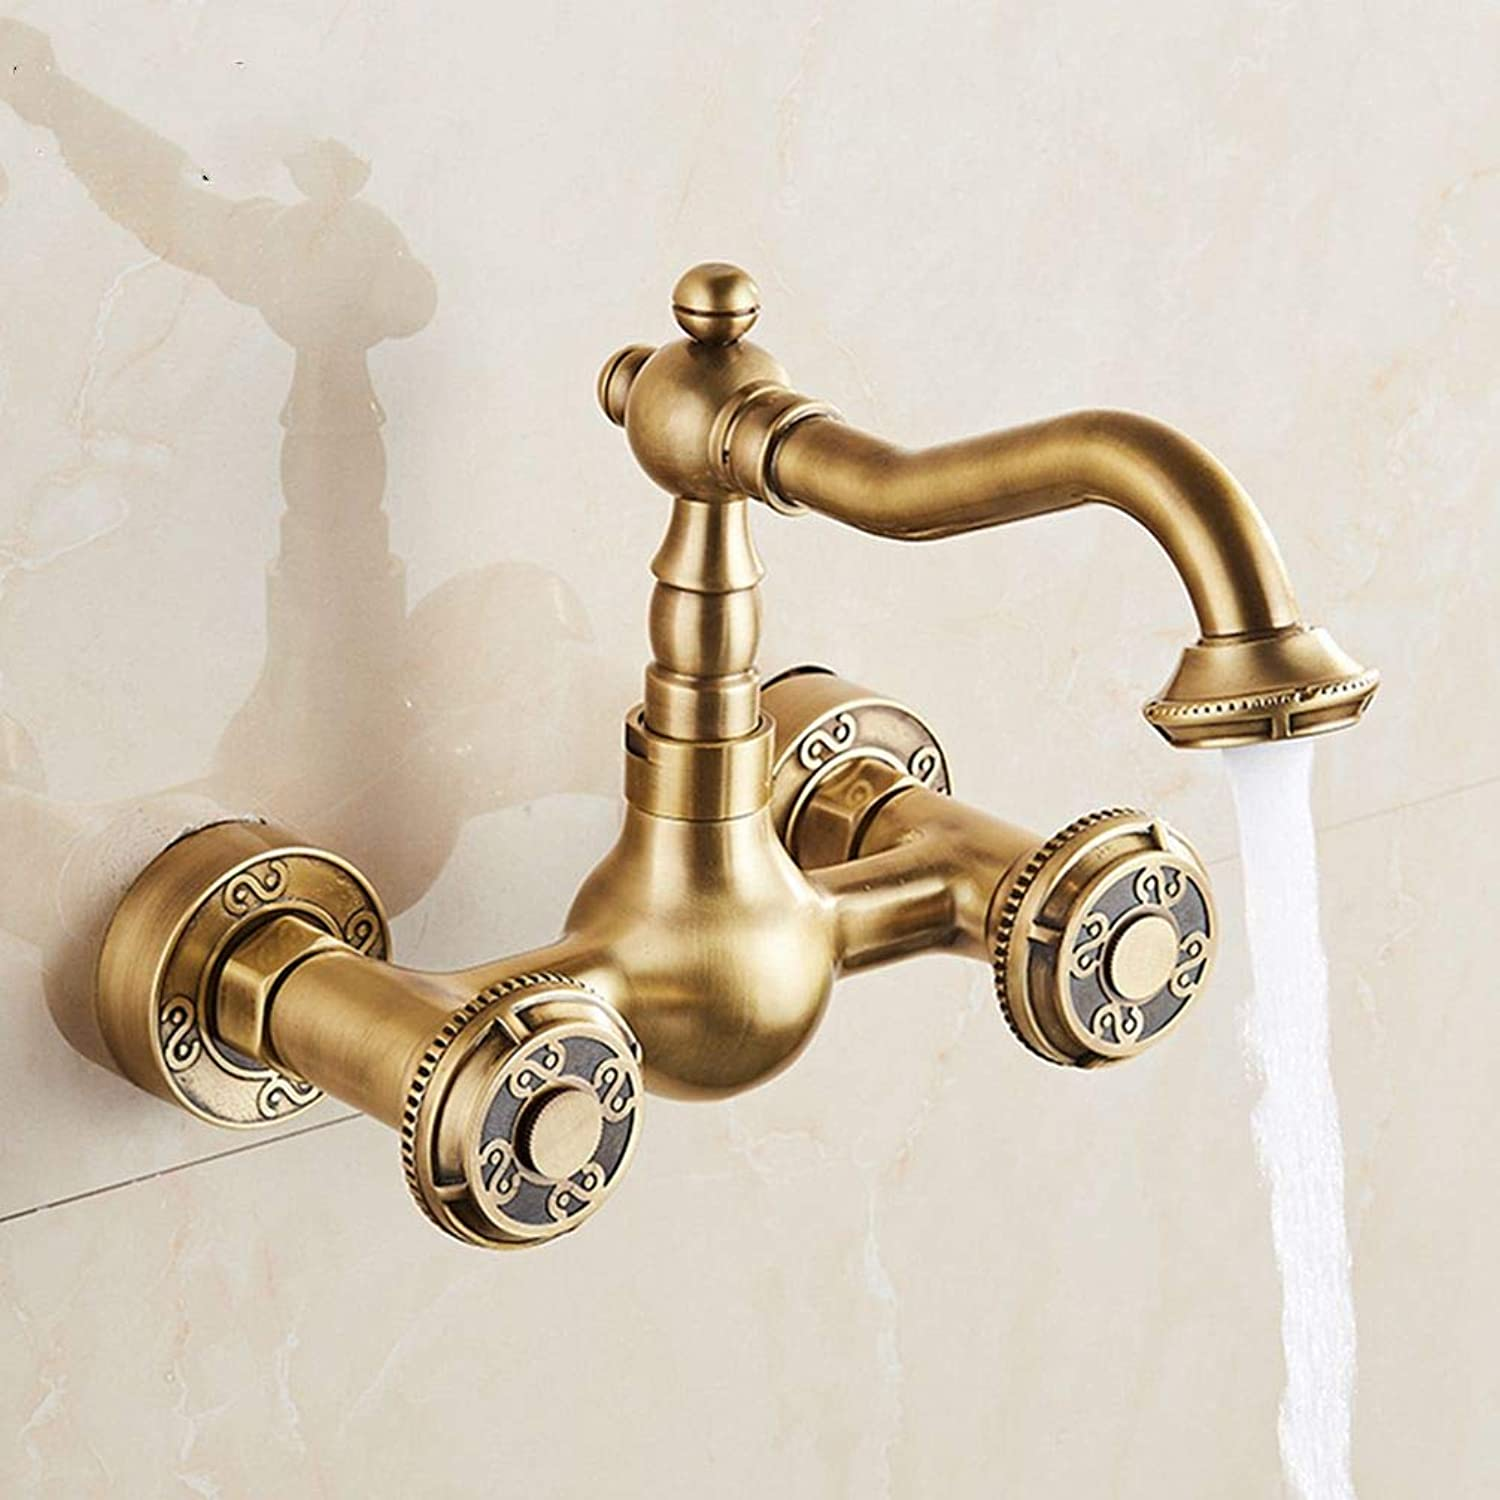 FZHLR Brass Material Wall Mounted Antique Kitchen Faucet Hot and Cold Single Lever Kitchen Sink Tap Basin Faucet Mixer Basin Faucet,Antique 2